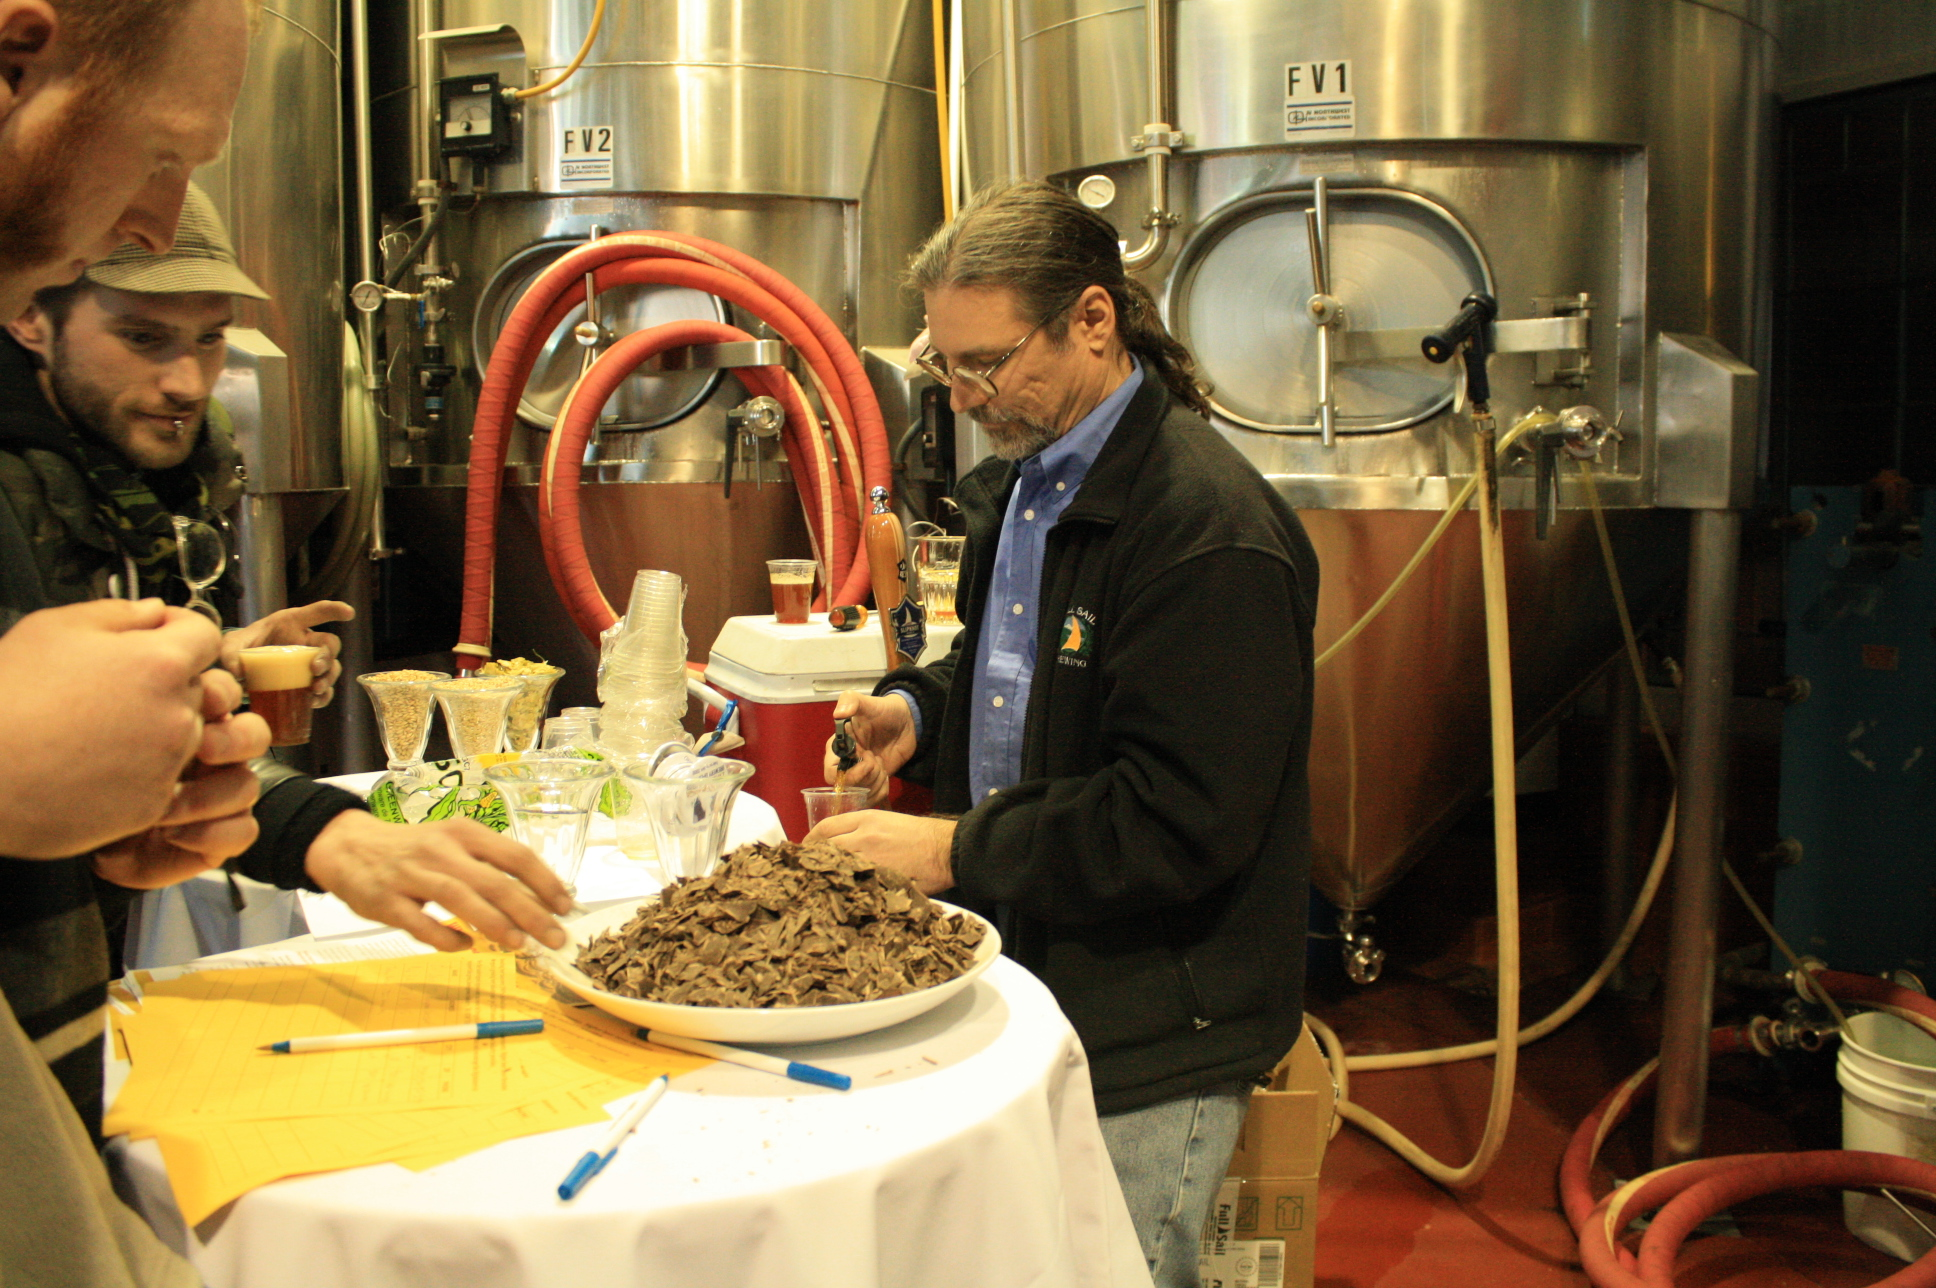 Brewer Phil Roche serves flavorful Full Sail samples